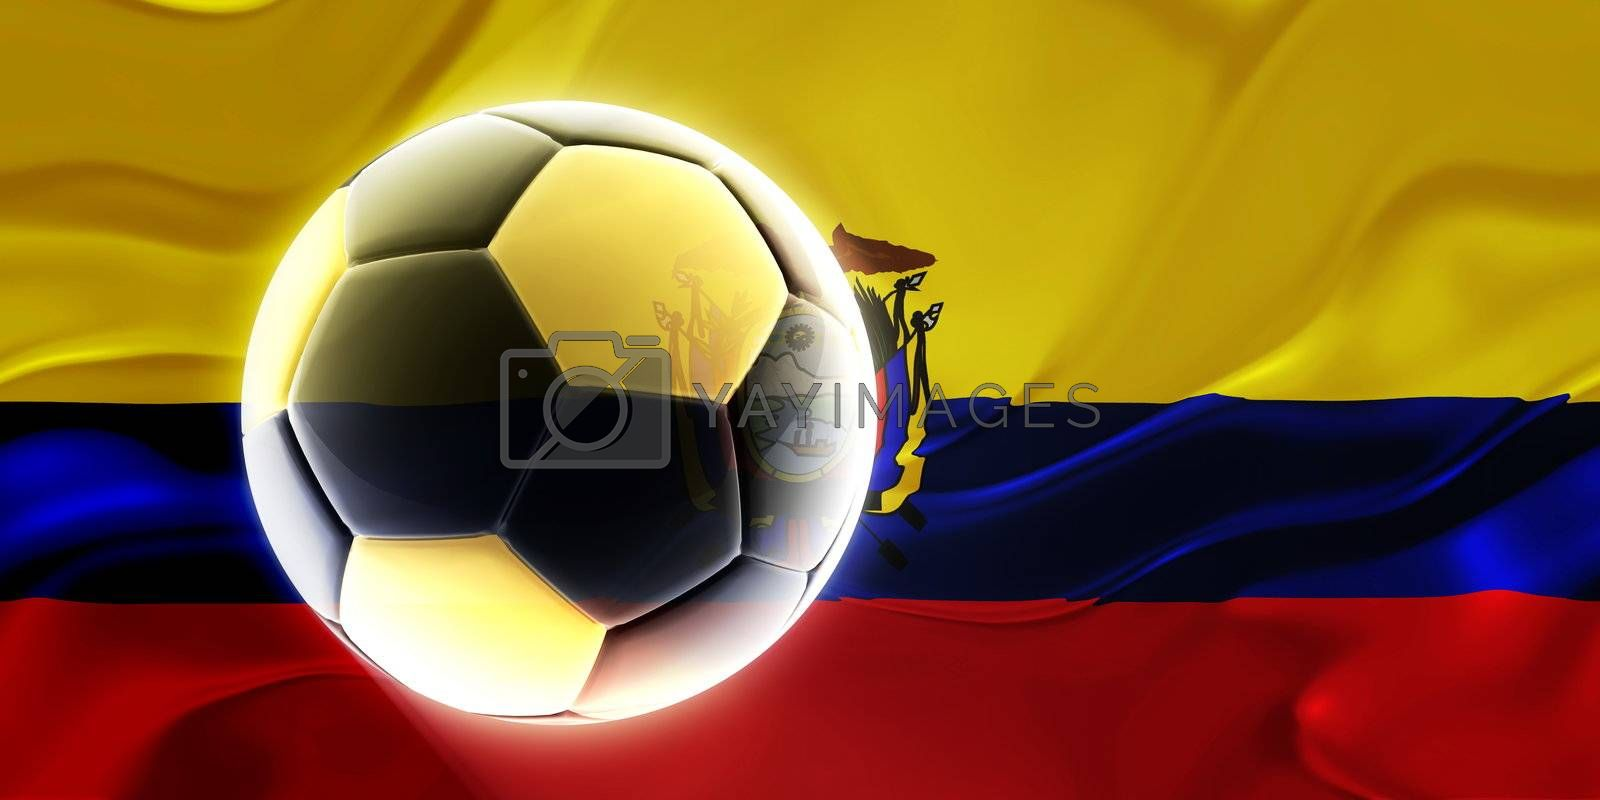 Flag of Ecuador, national country symbol illustration wavy fabric sports soccer football